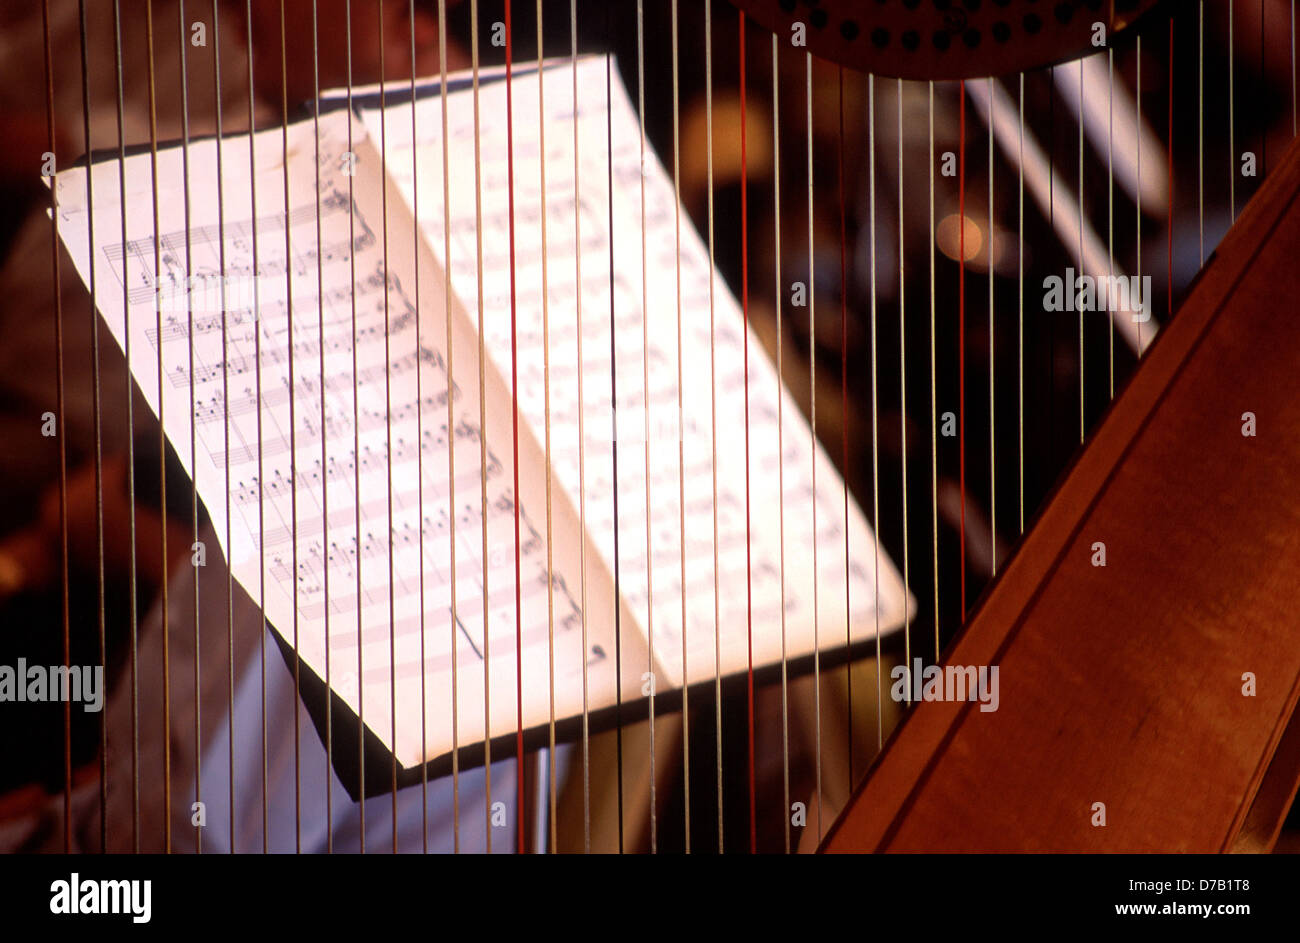 Musical notes - Stock Image